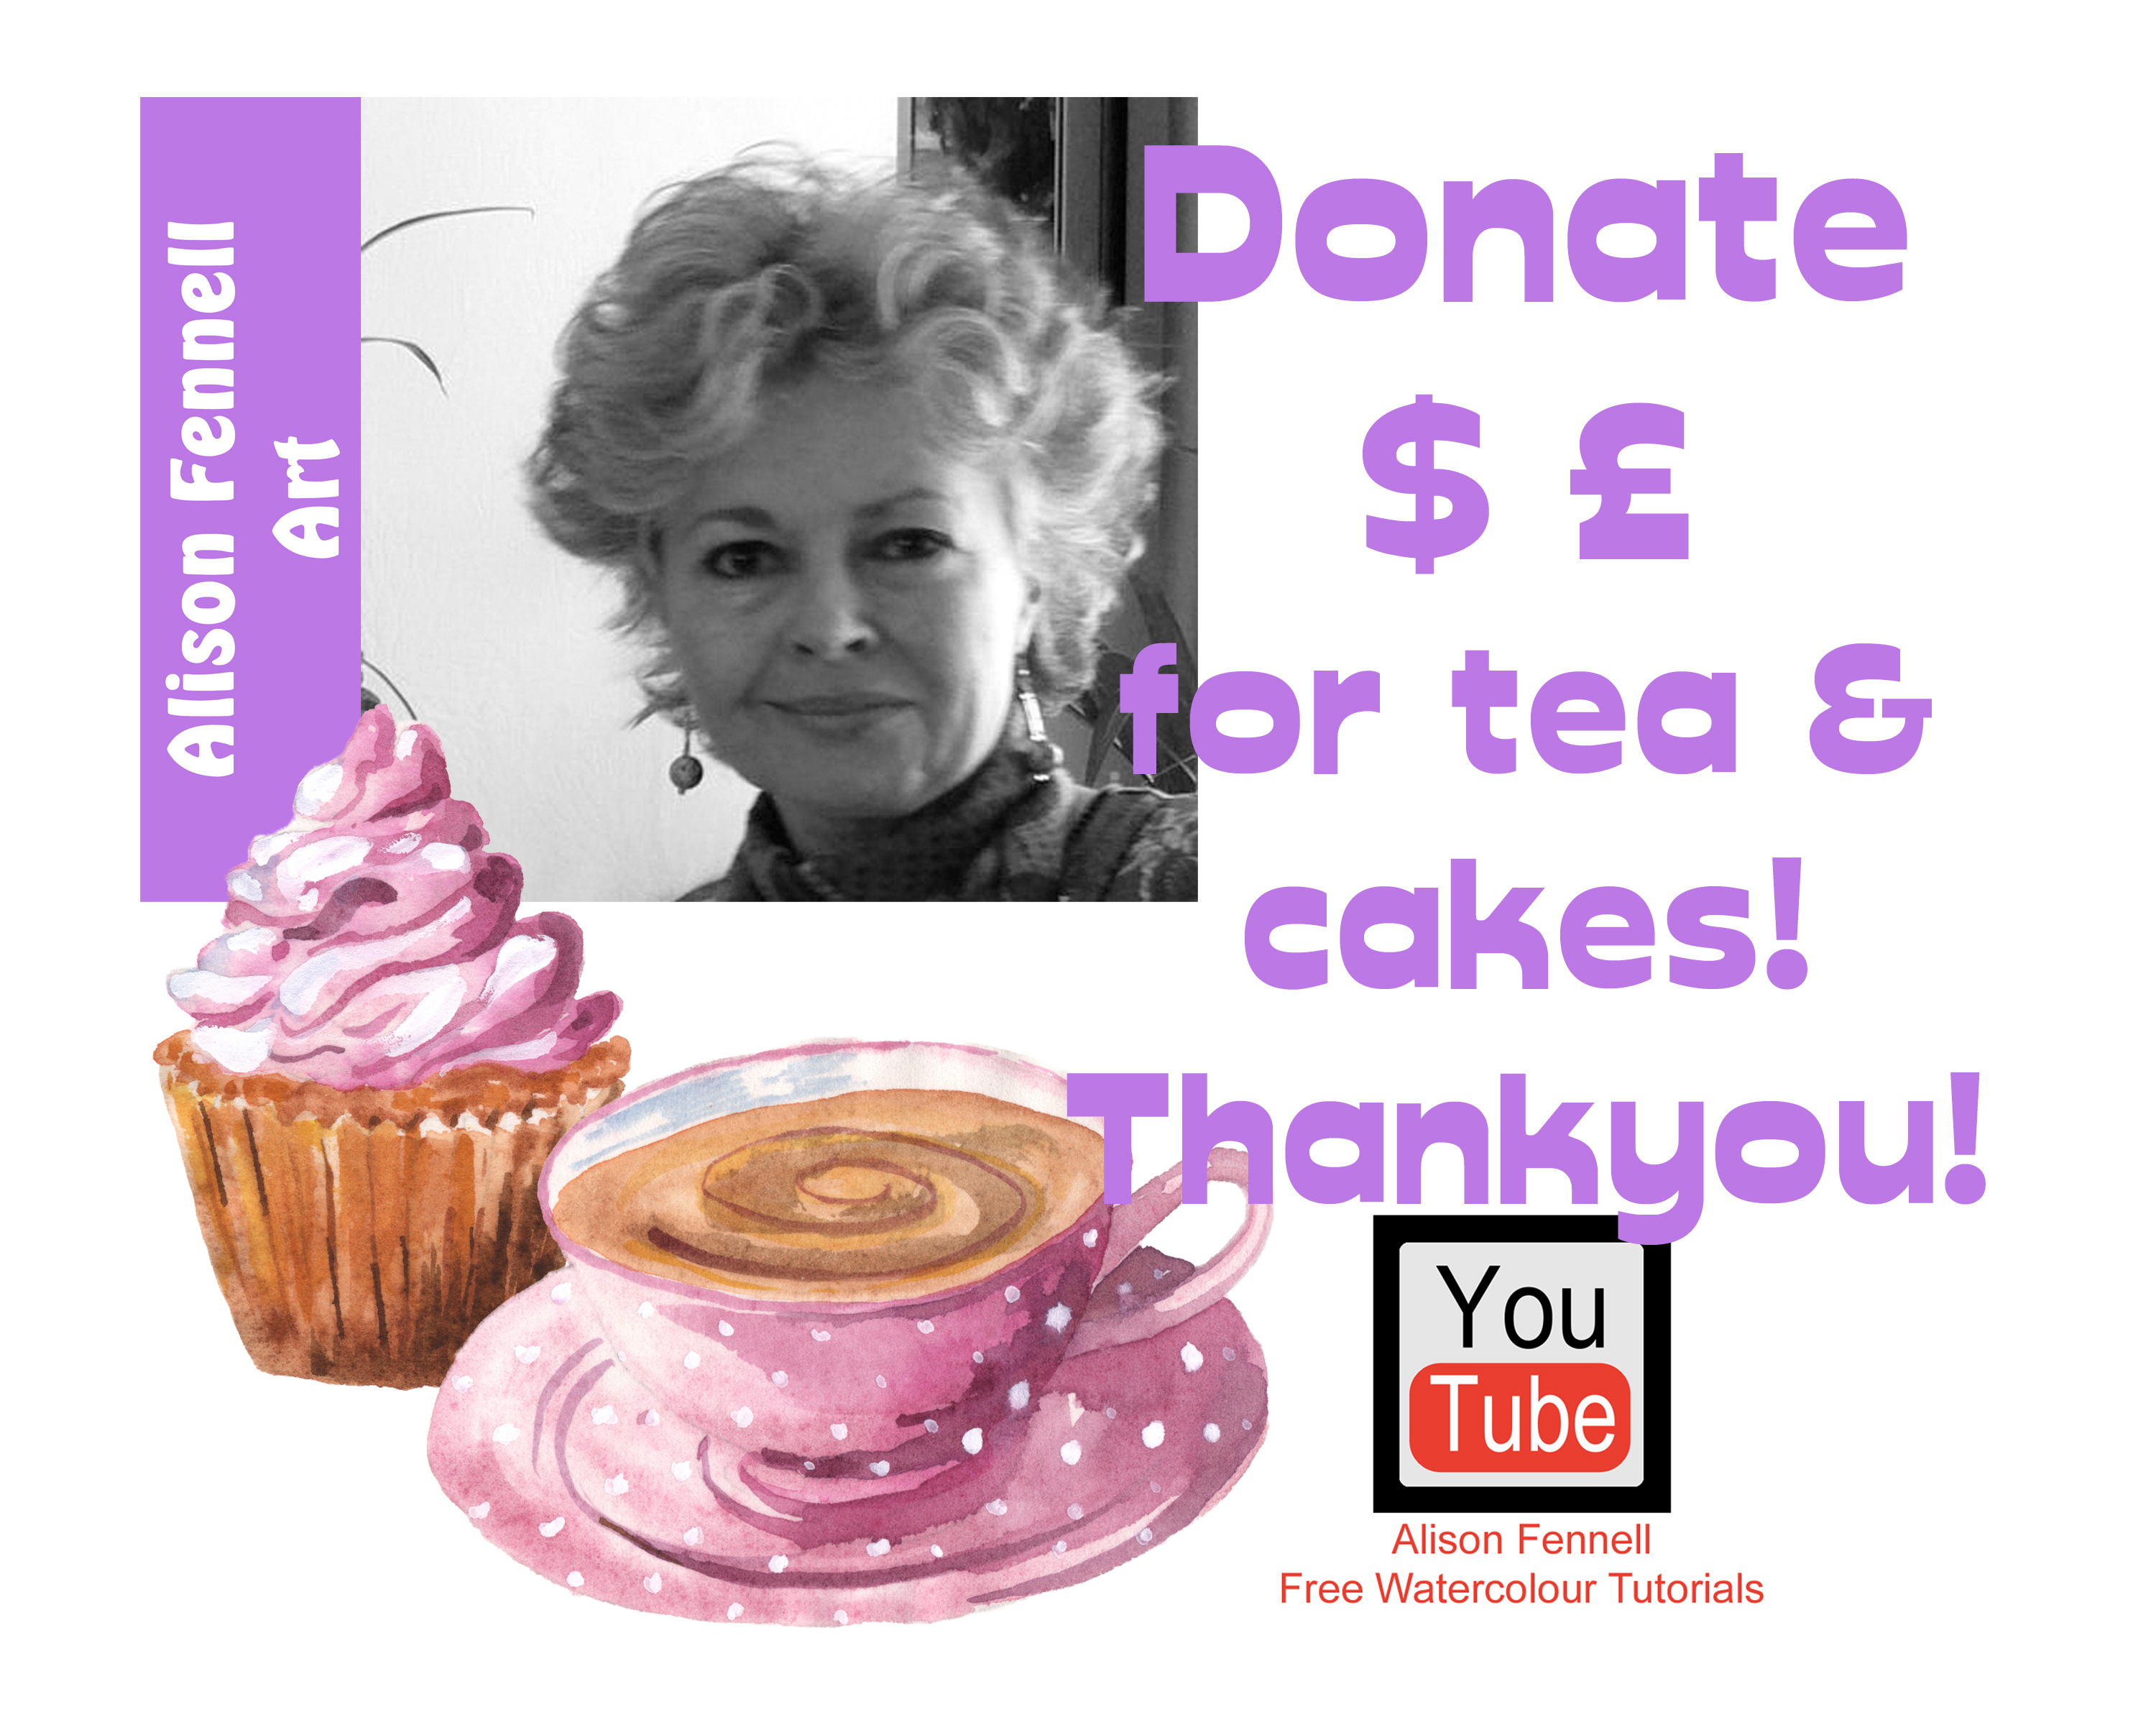 youtube donate tea.jpg